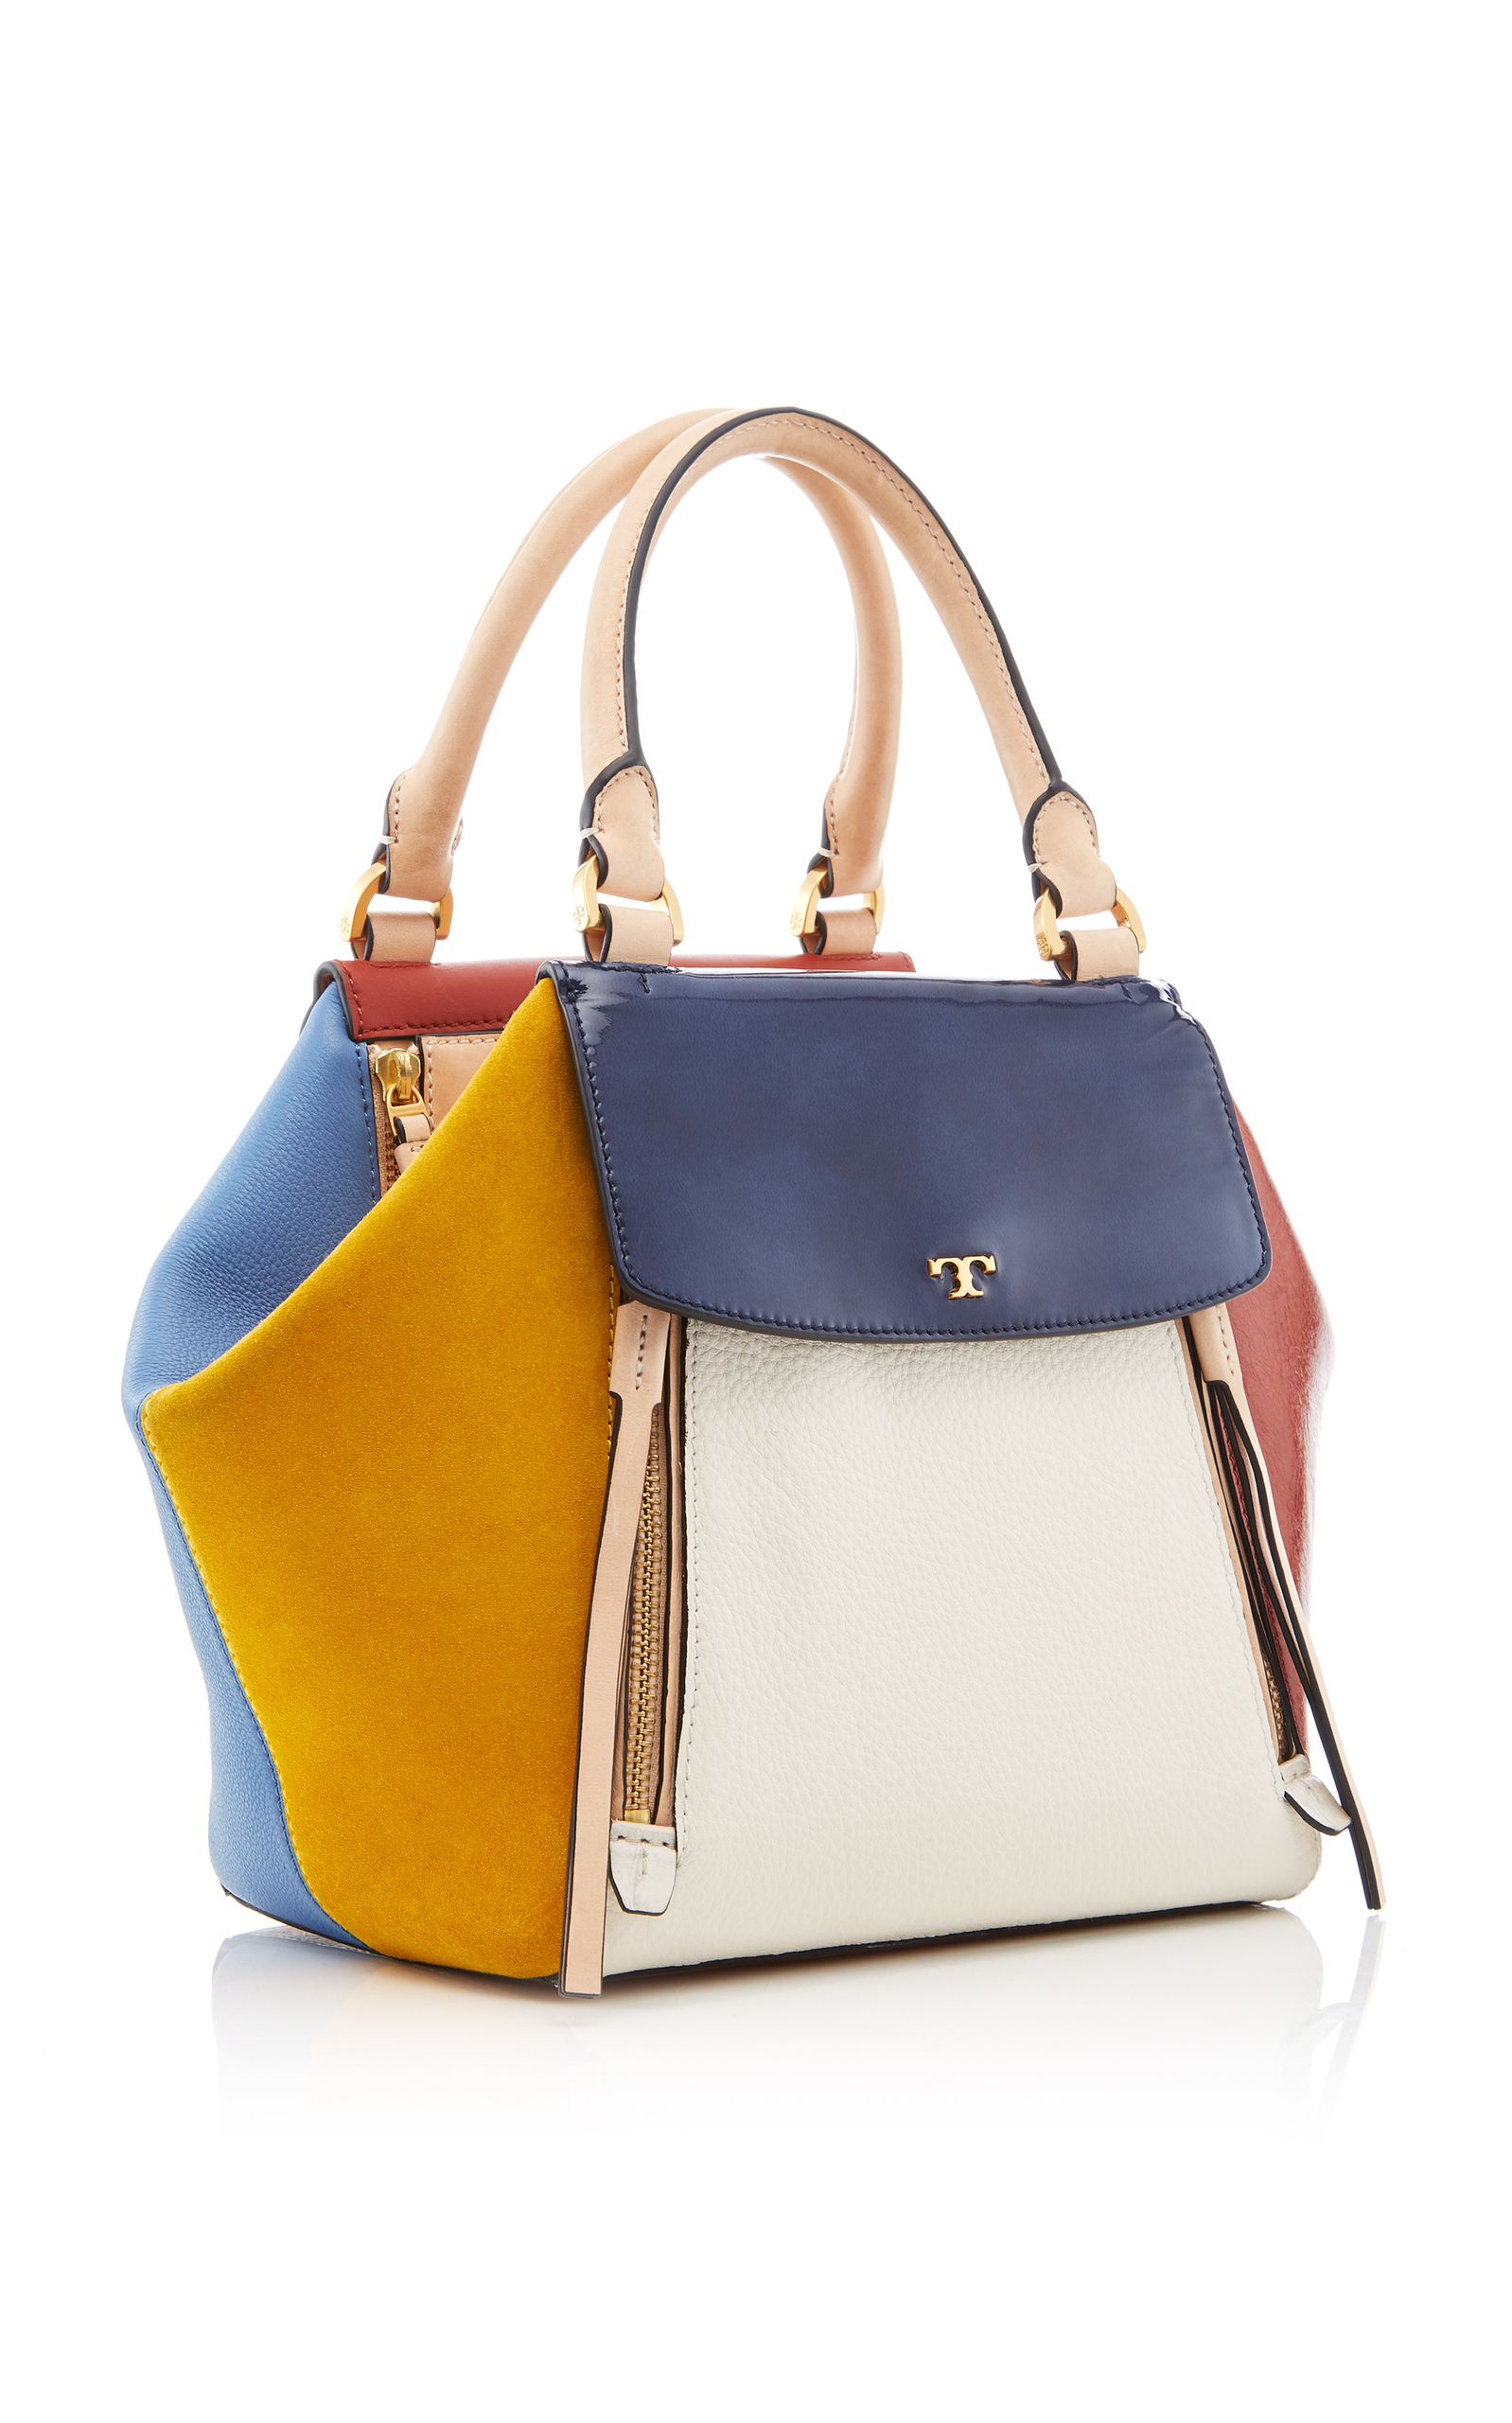 54fd5944d4471 Tory BurchHalf Moon Mixed Material Satchel. CLOSE. Loading. Loading